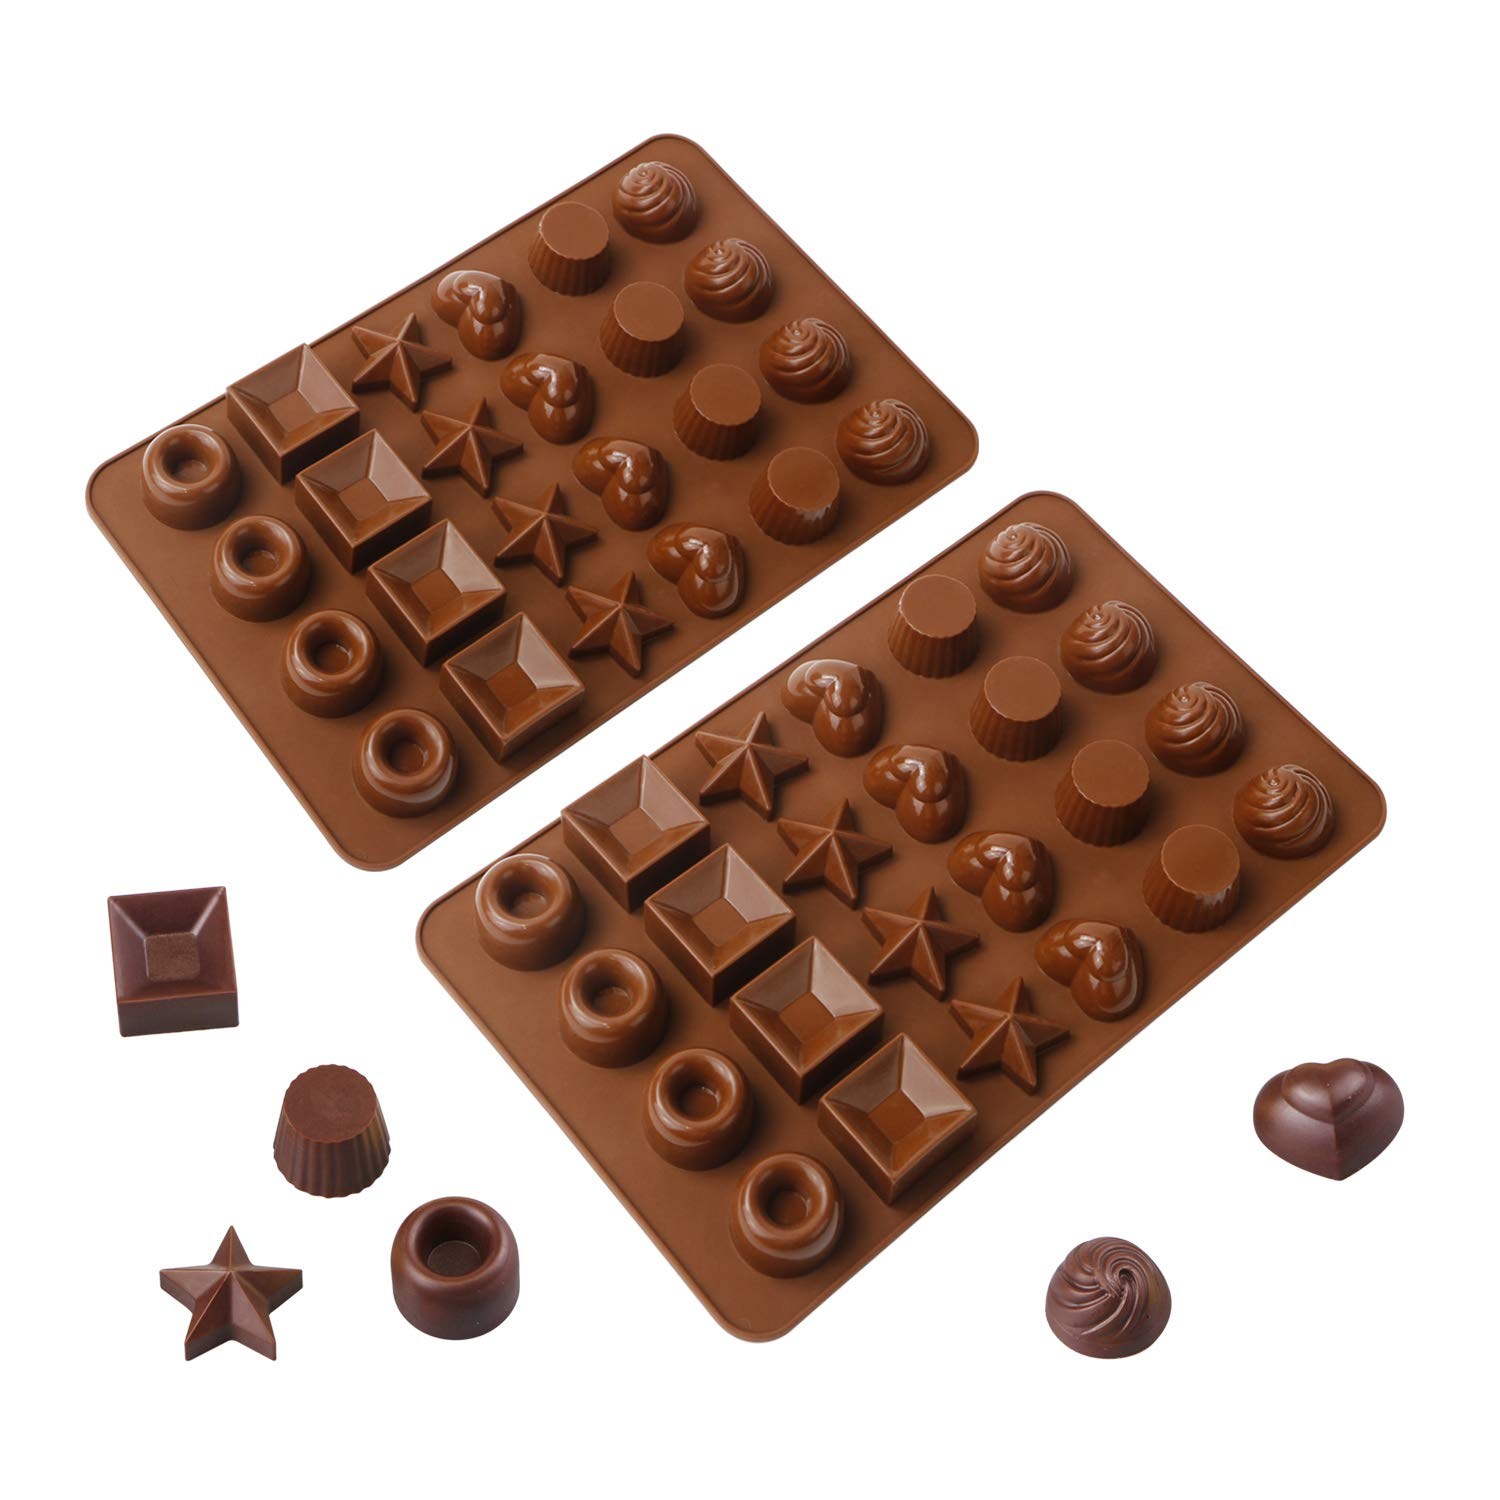 Webake Chocolate Molds 24 Cavity Jumbo Candy Mold,Flexible Silicone Molds for Keto Fat Bomb and Peanut Butter, Caramel Mold,Soap Mold -2 Pack((BPA Free, Dishwasher Safe,Non Stick)